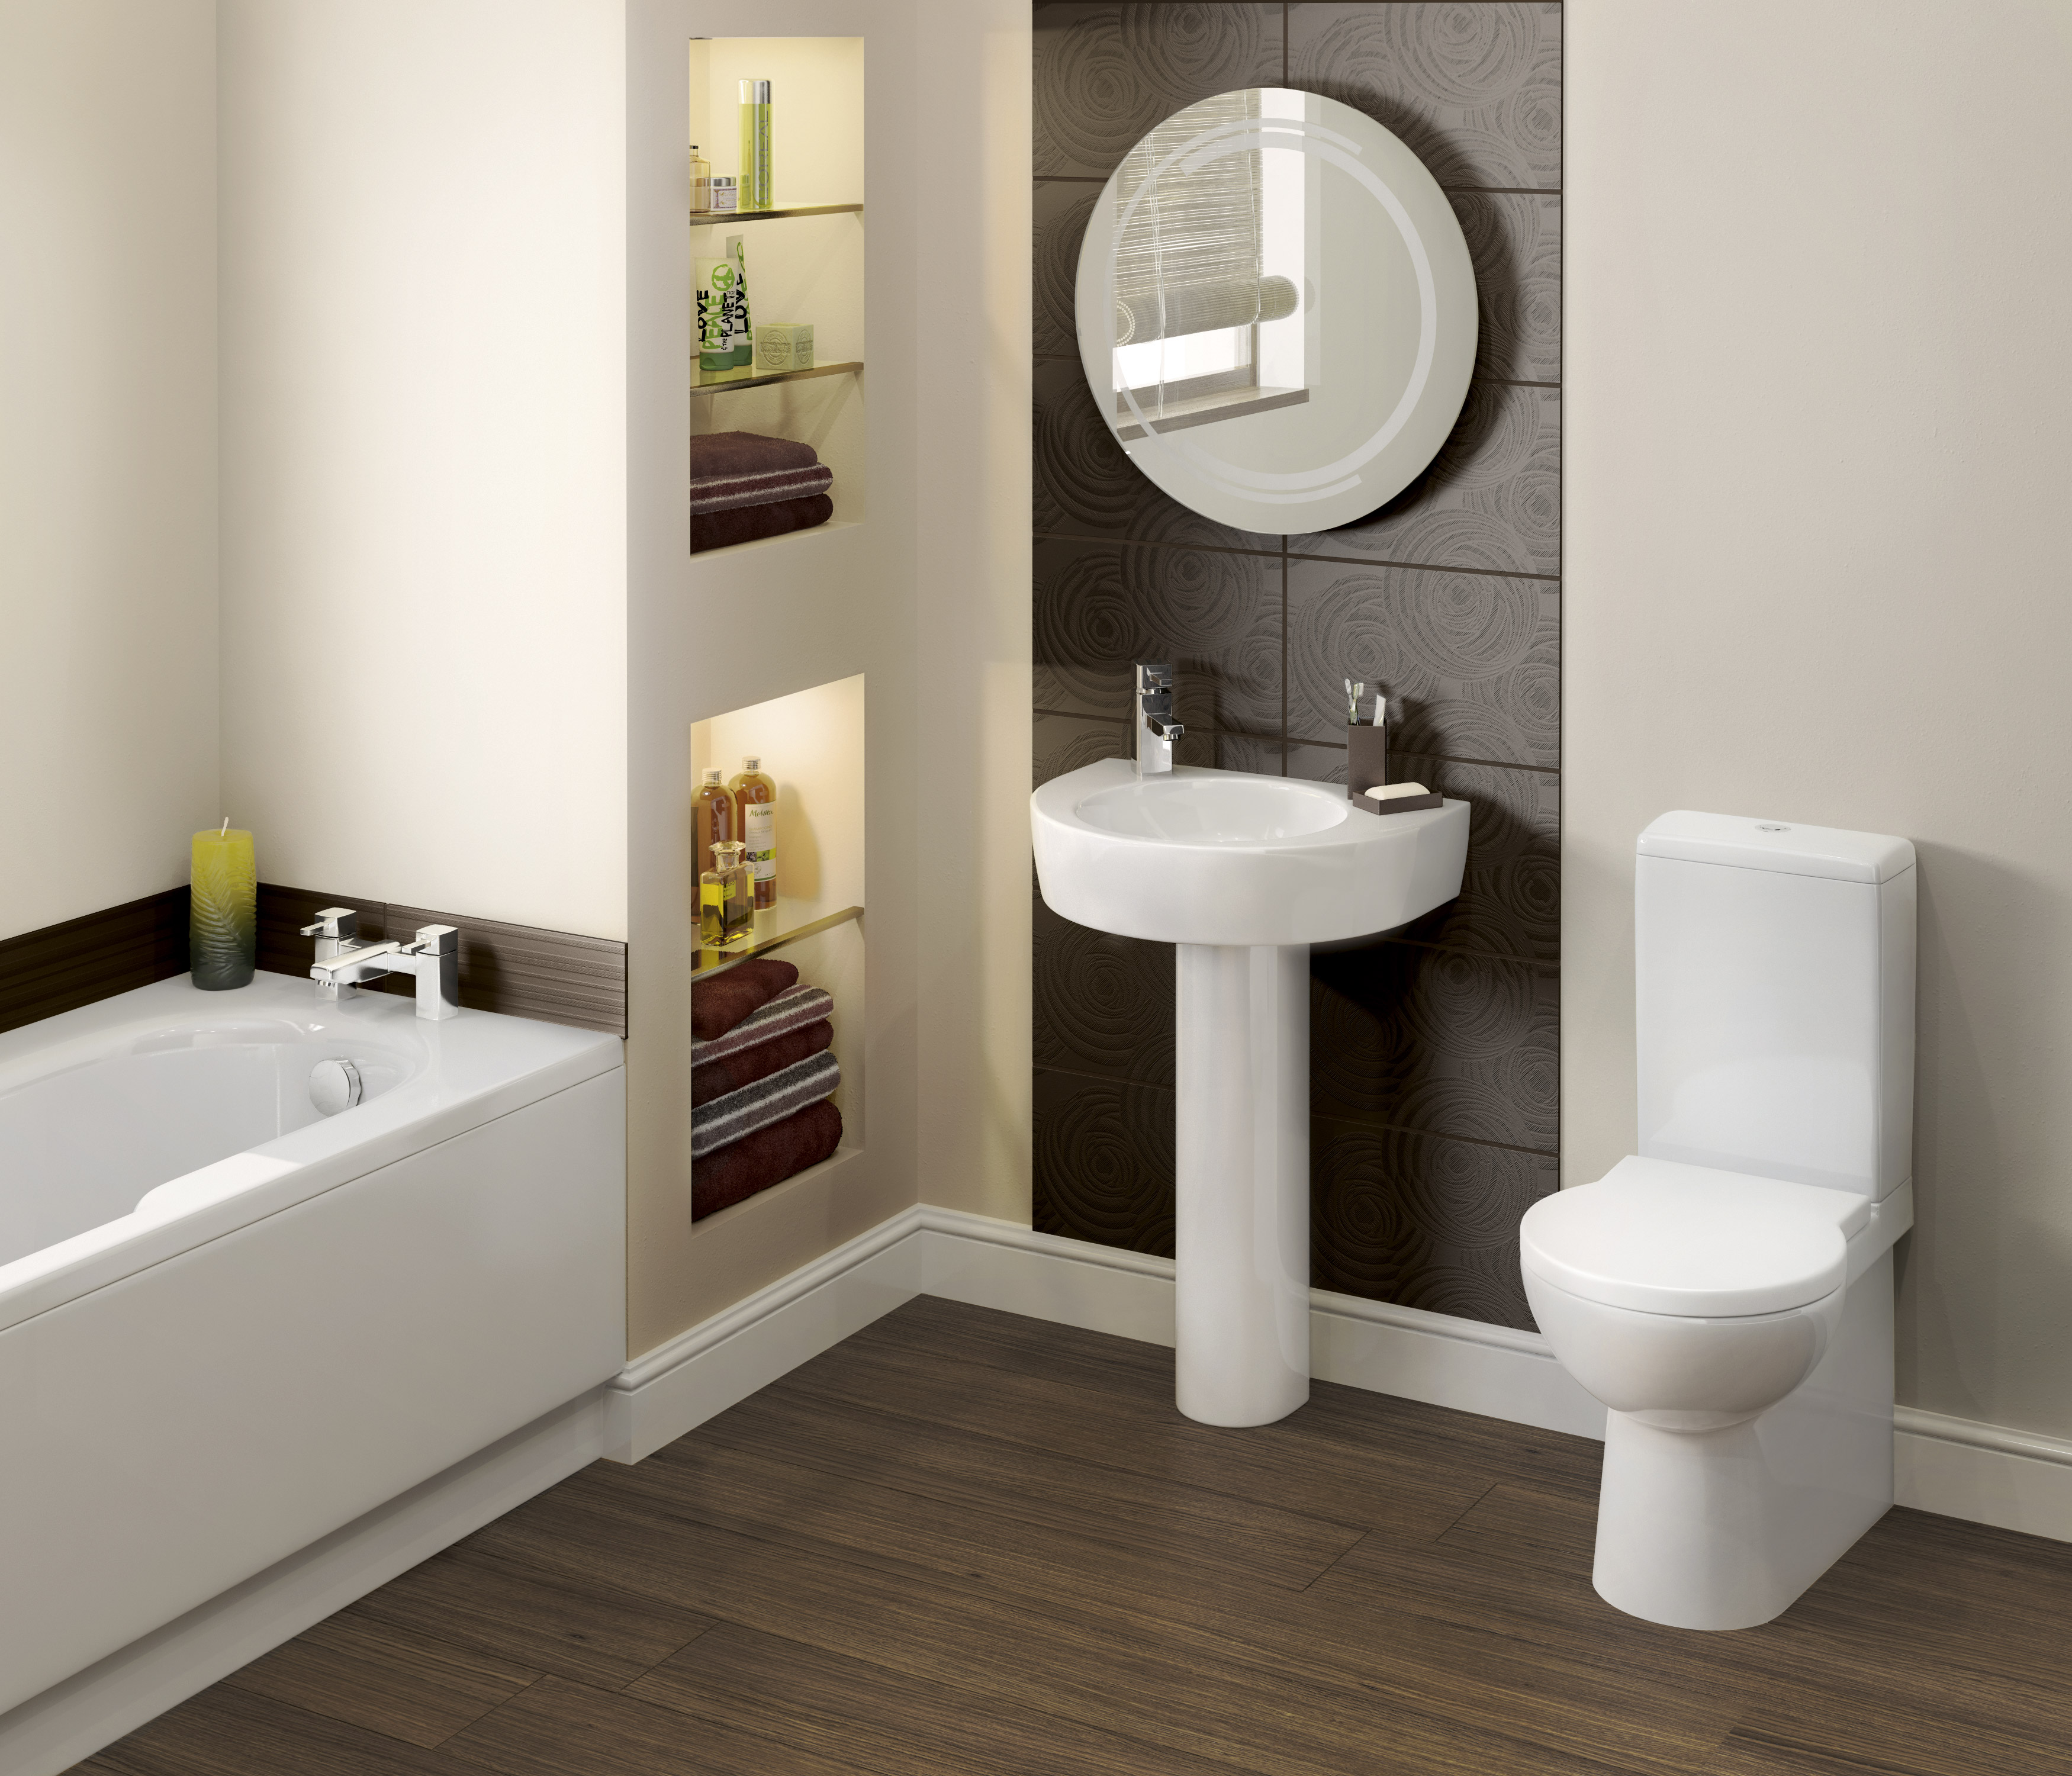 Bathroom design bathroom fitters bristol for Bathroom design photos